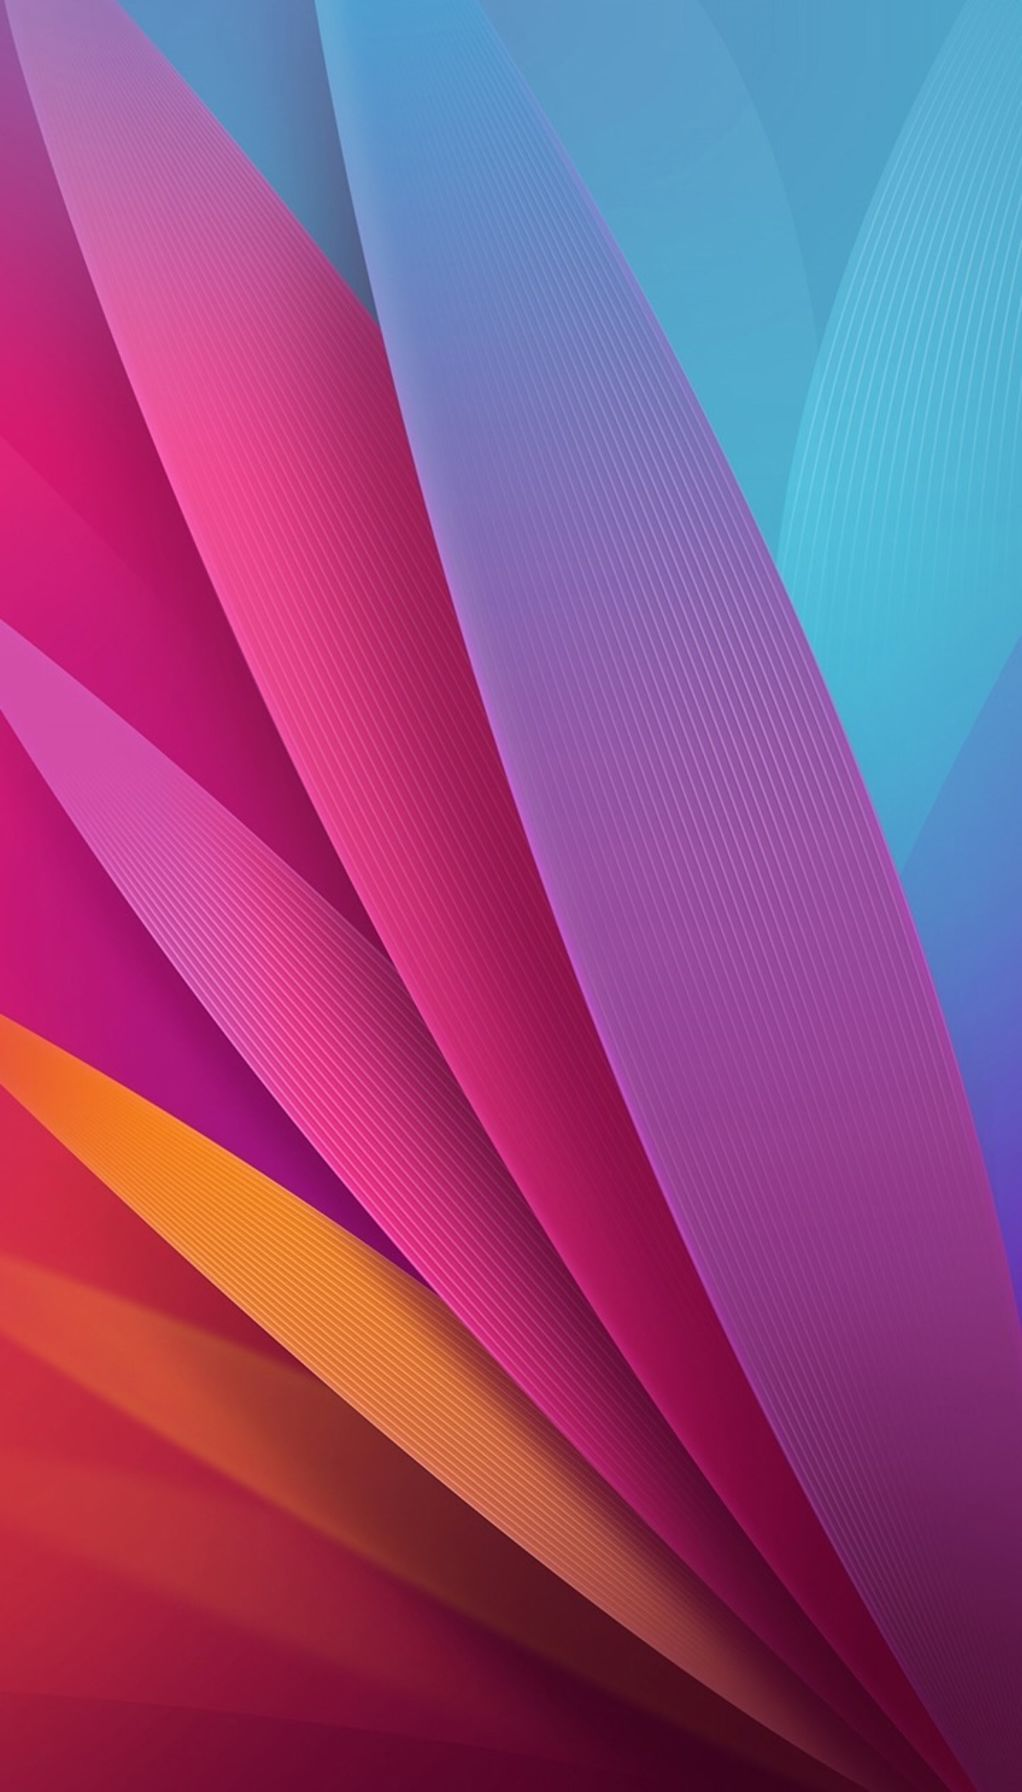 5 Wallpapers That Will Look Perfect On Your Iphone 7 Abstract Iphone Wallpaper Phone Wallpaper Design Abstract Wallpaper Backgrounds